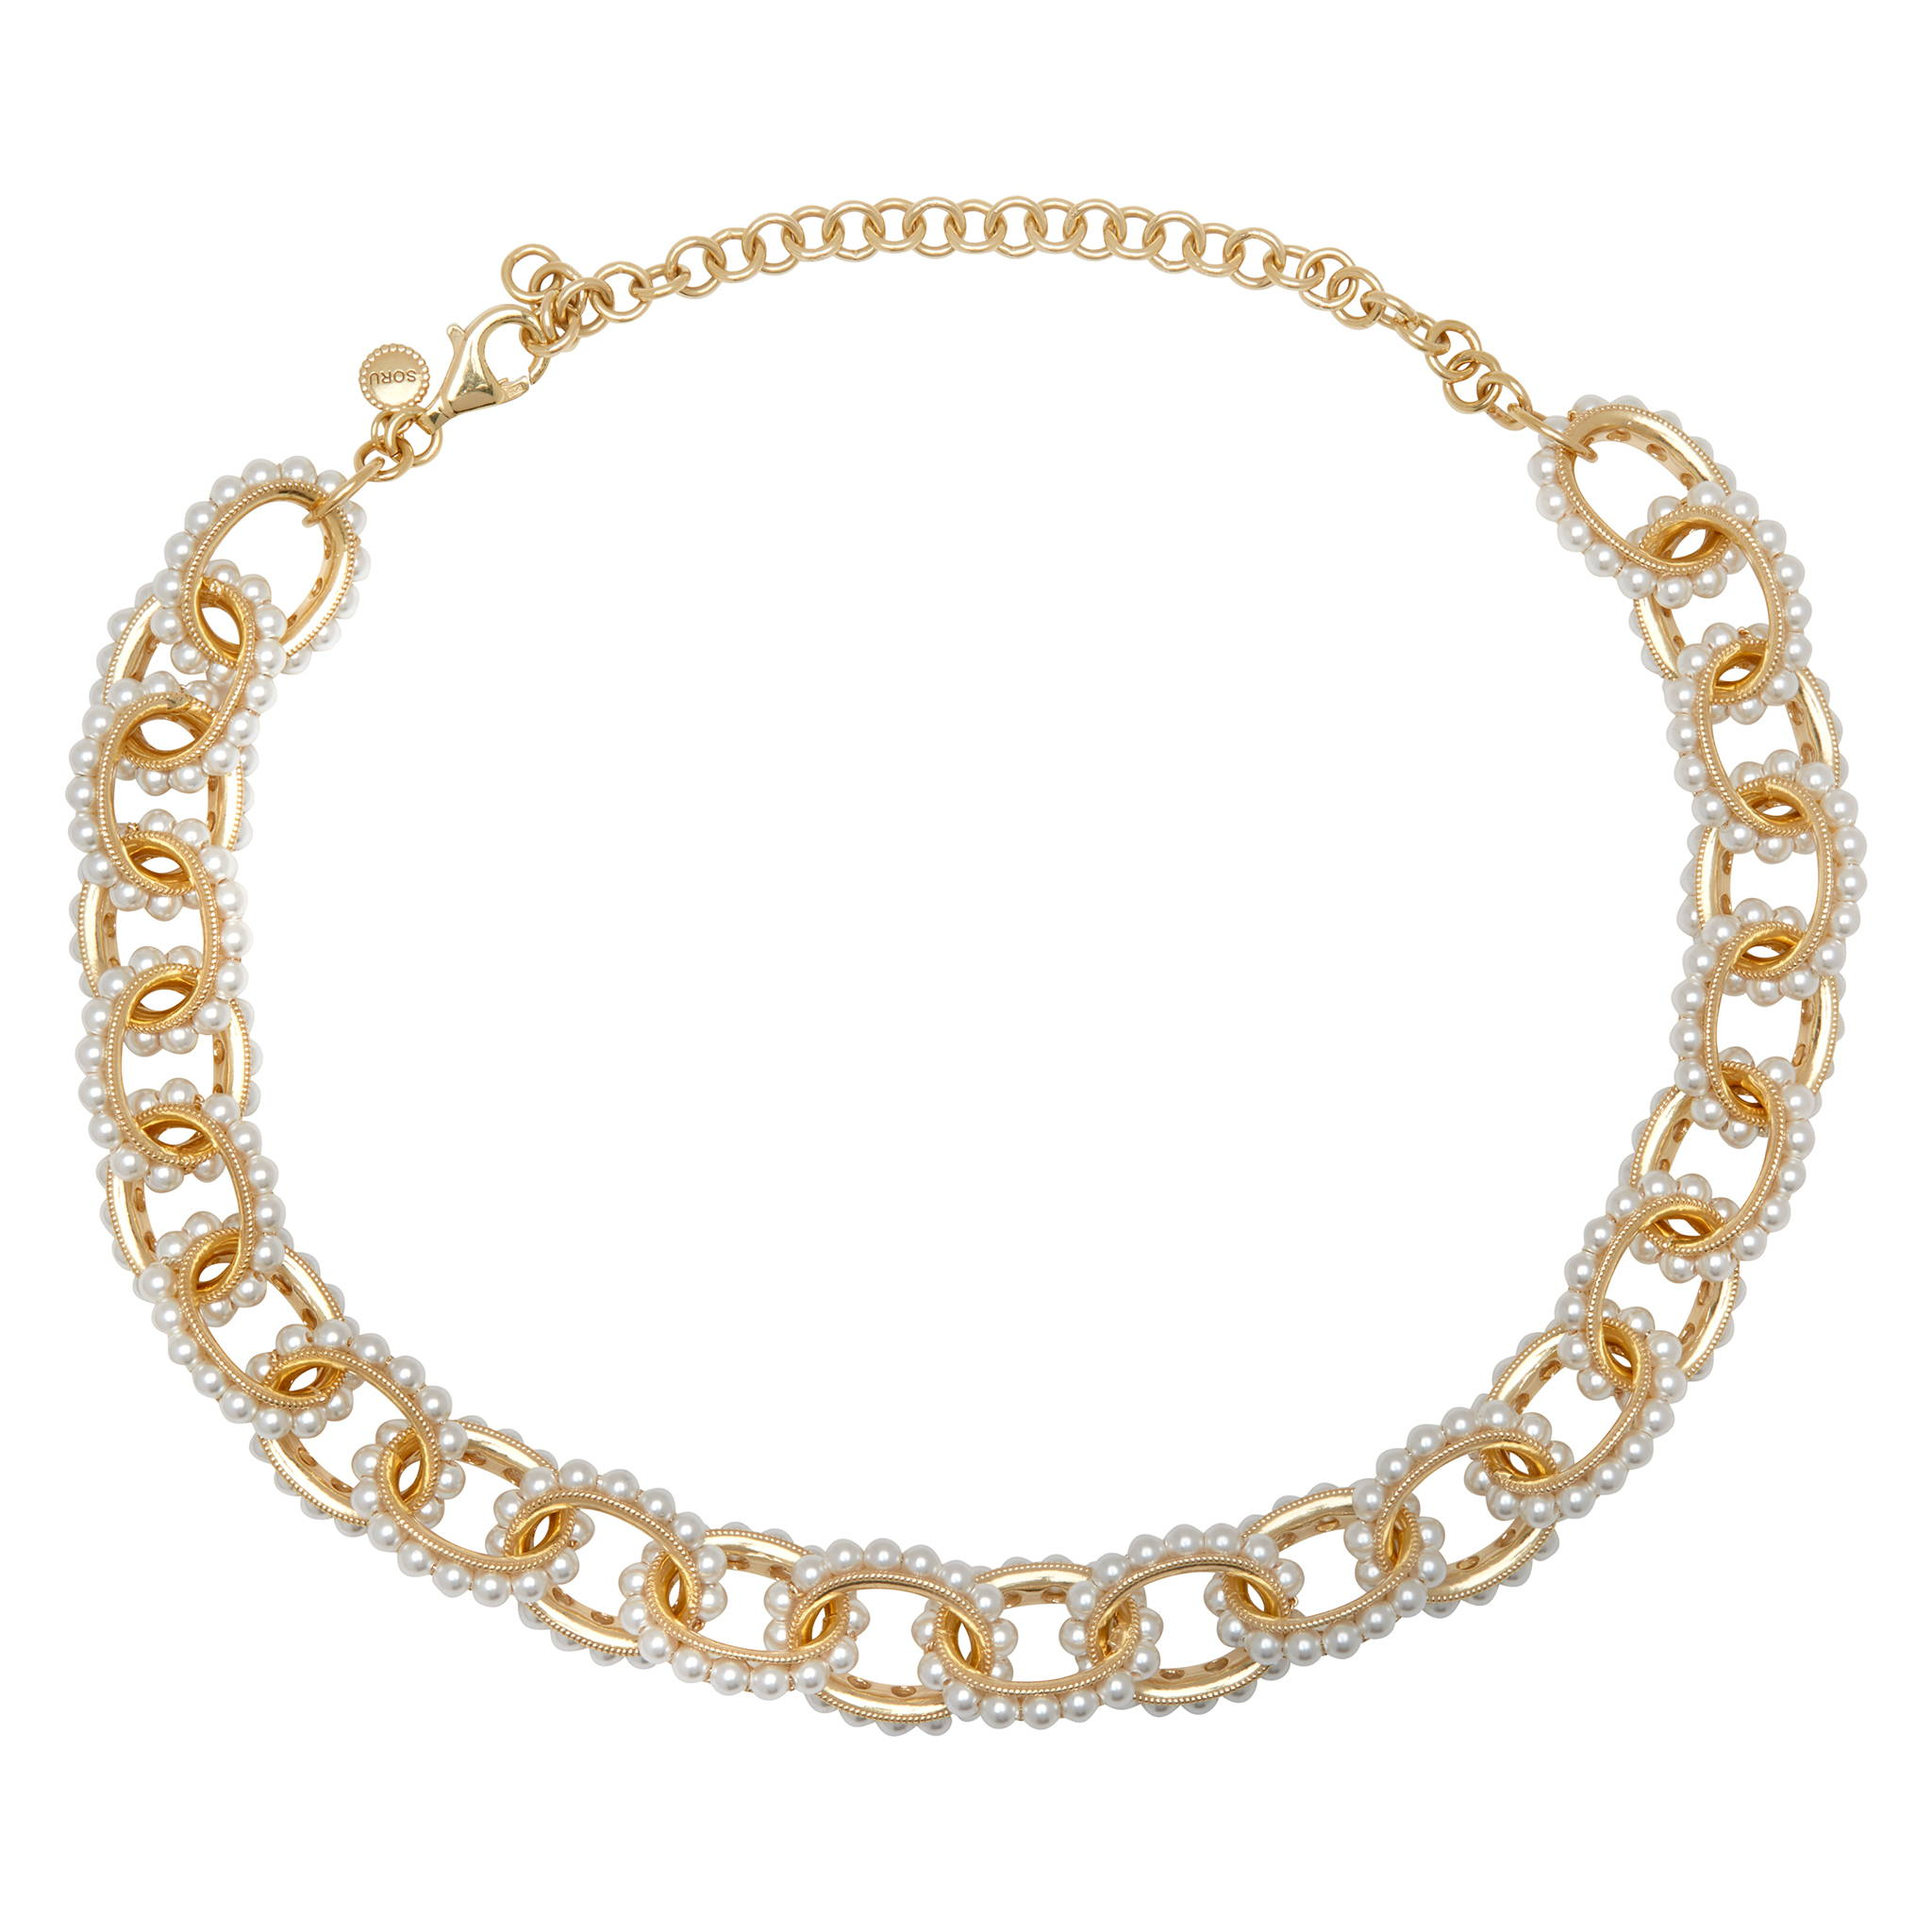 soru jewellery mondello necklace, soru pearl link necklace